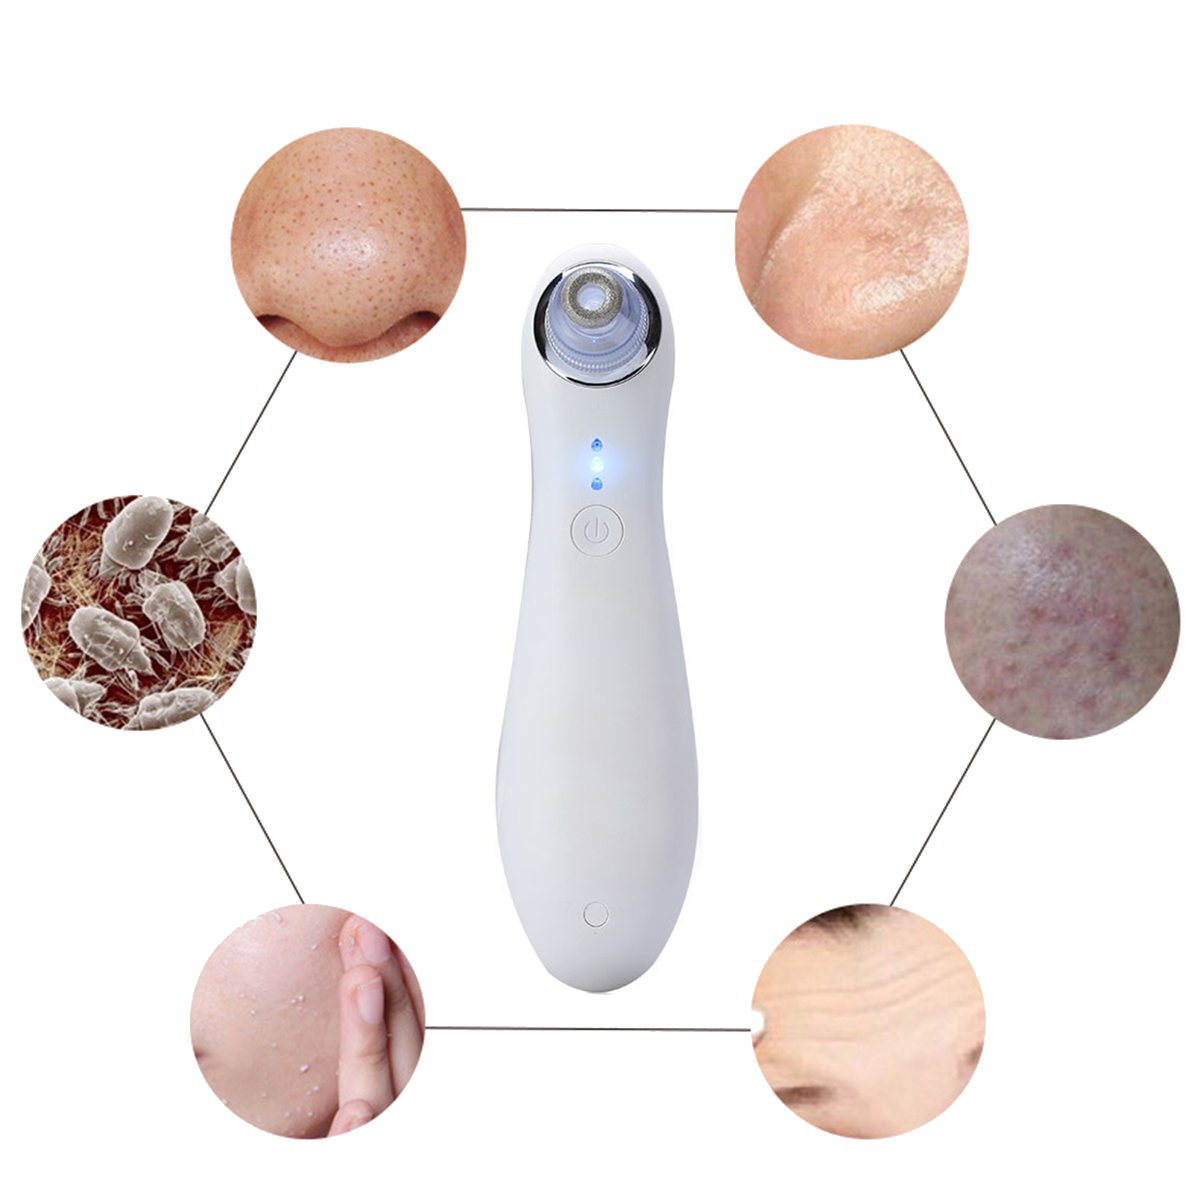 Portable Electric Facial Blackhead Suction Tool Rechargeable Acne Remover Tighten Pore Cleansing